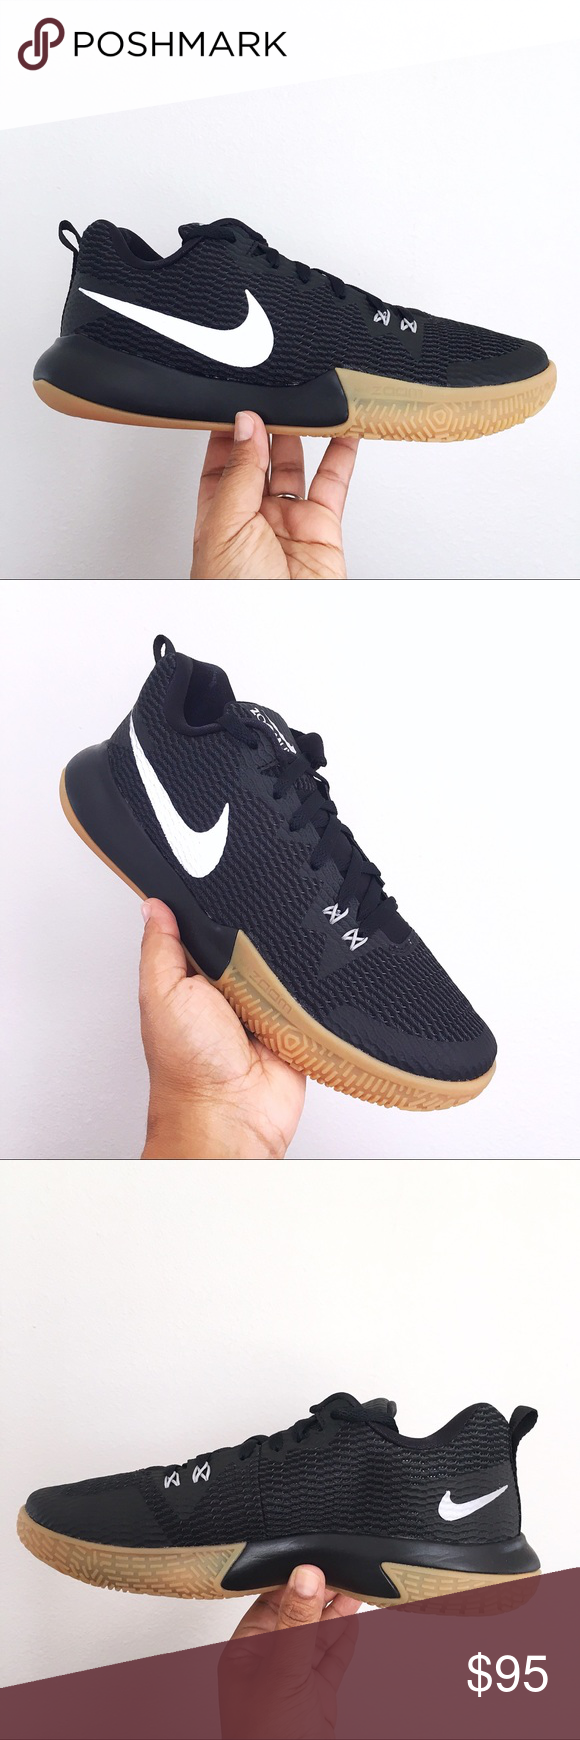 e5e22c55d311 Nike Zoom Live II Black Reflective Silver Mens Brand New in Box WITH Lid  🙌🏽 Nike Zoom Live II Black Anthracite Gum Light Brown Reflect Silver Mens  AH7566 ...